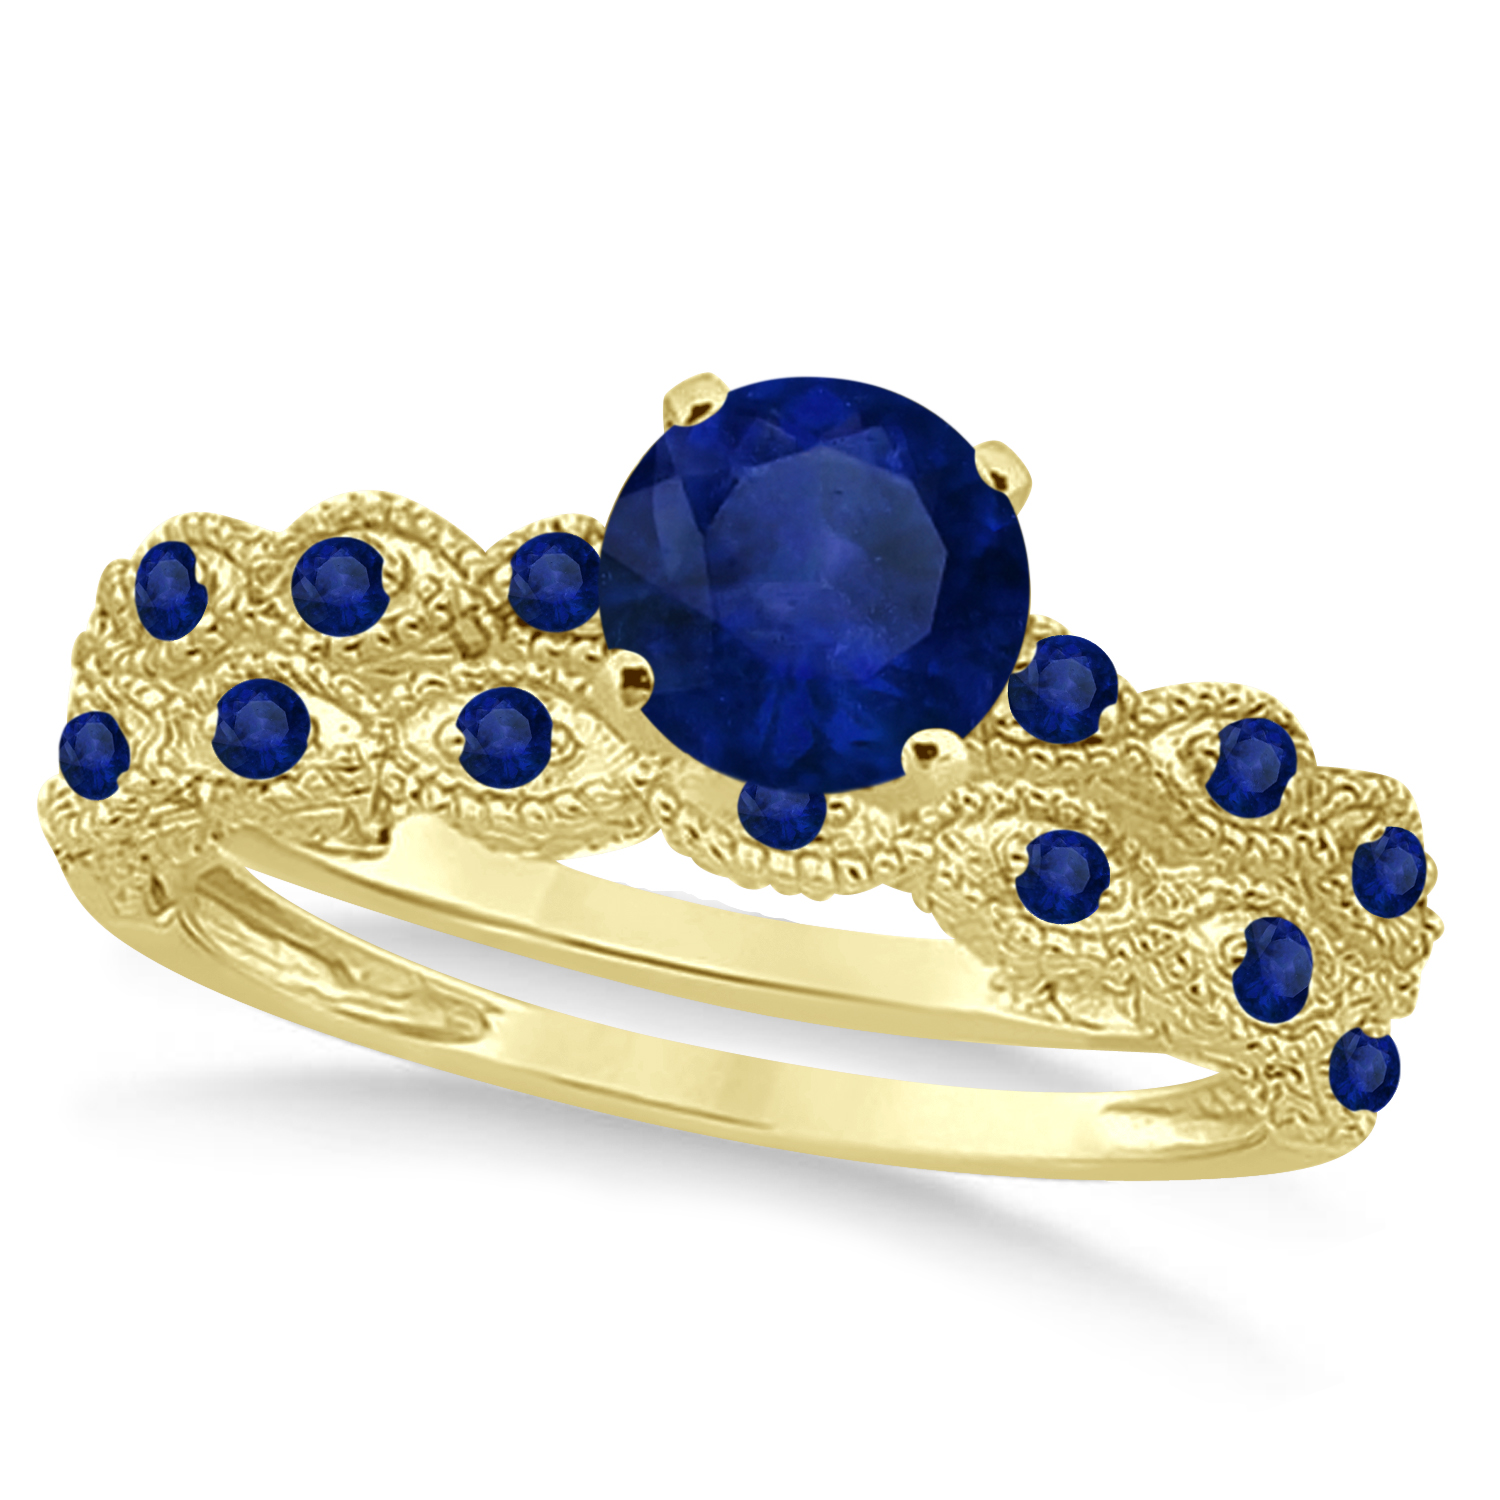 Vintage Blue Sapphire Engagement Ring Bridal Set 18k Yellow Gold 1.36ct